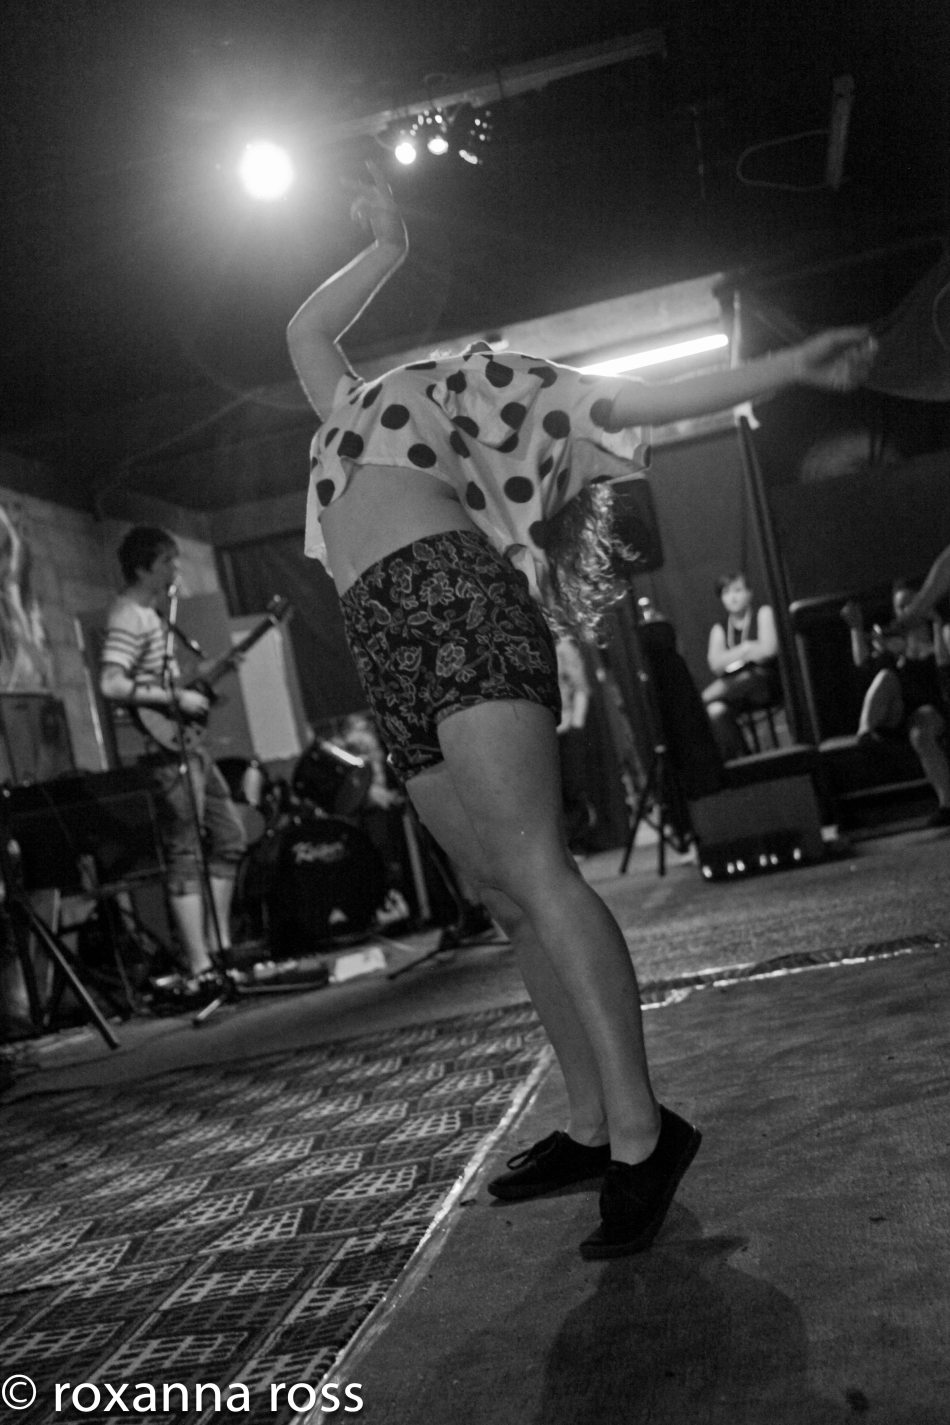 untitled (23 of 48)